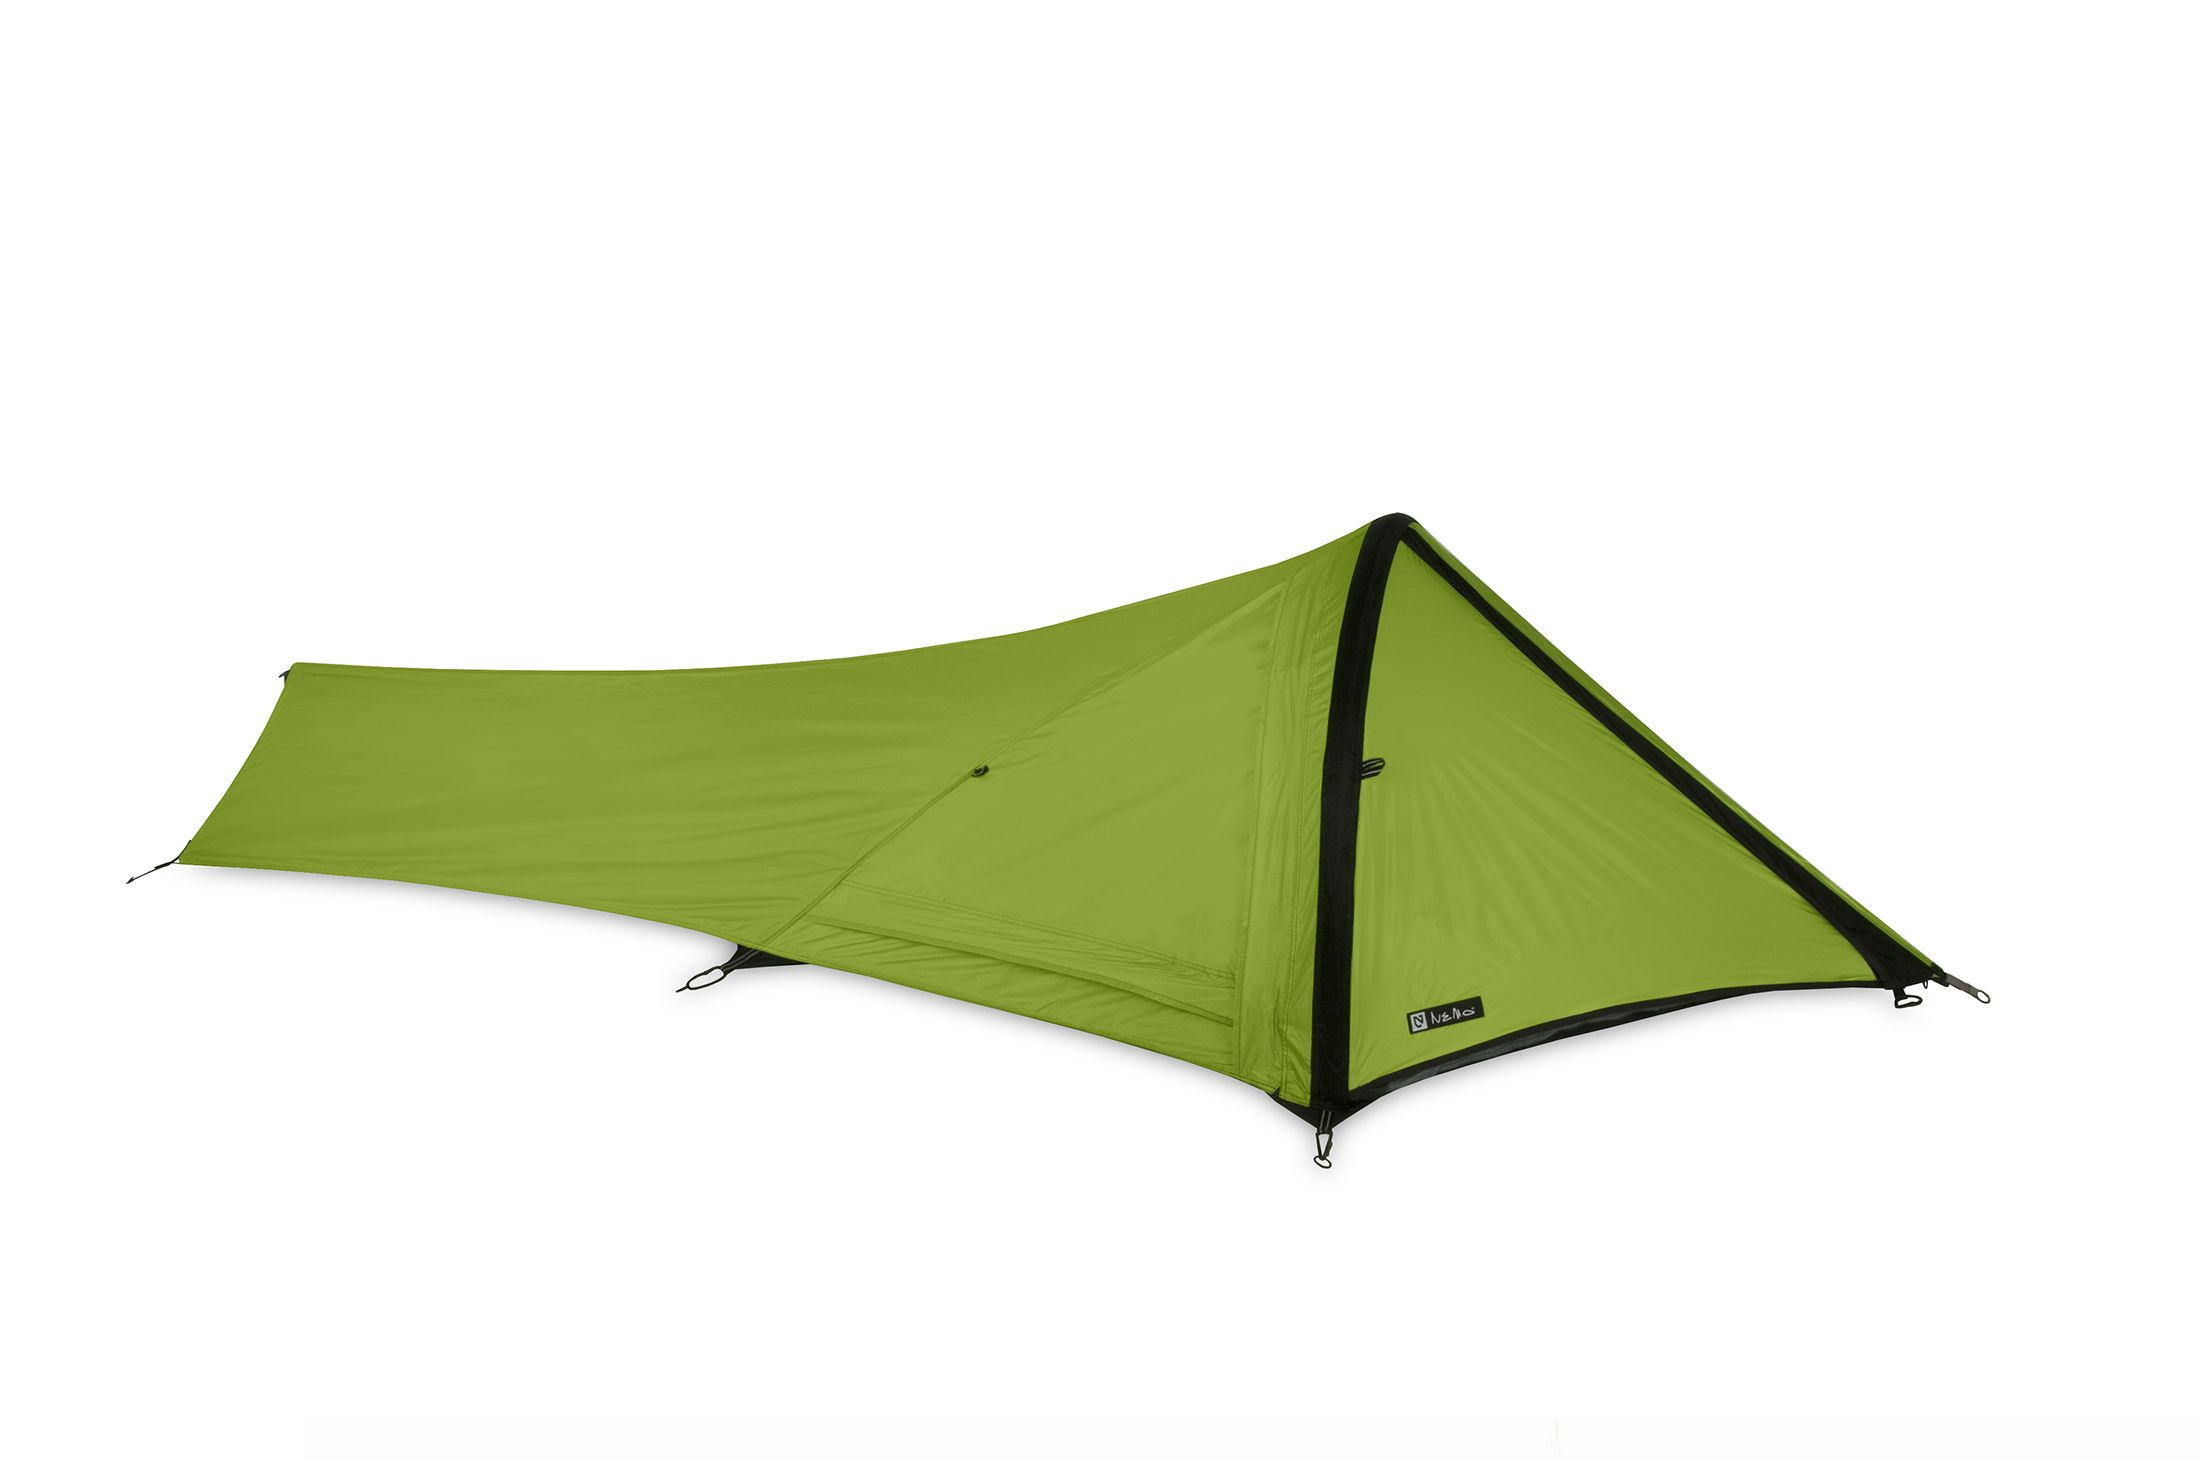 NEMO Gogo LE Lightweight Inflatable One Person Bivy Tent | NEMO  sc 1 st  Pinterest & NEMO Gogo LE Lightweight Inflatable One Person Bivy Tent | NEMO ...